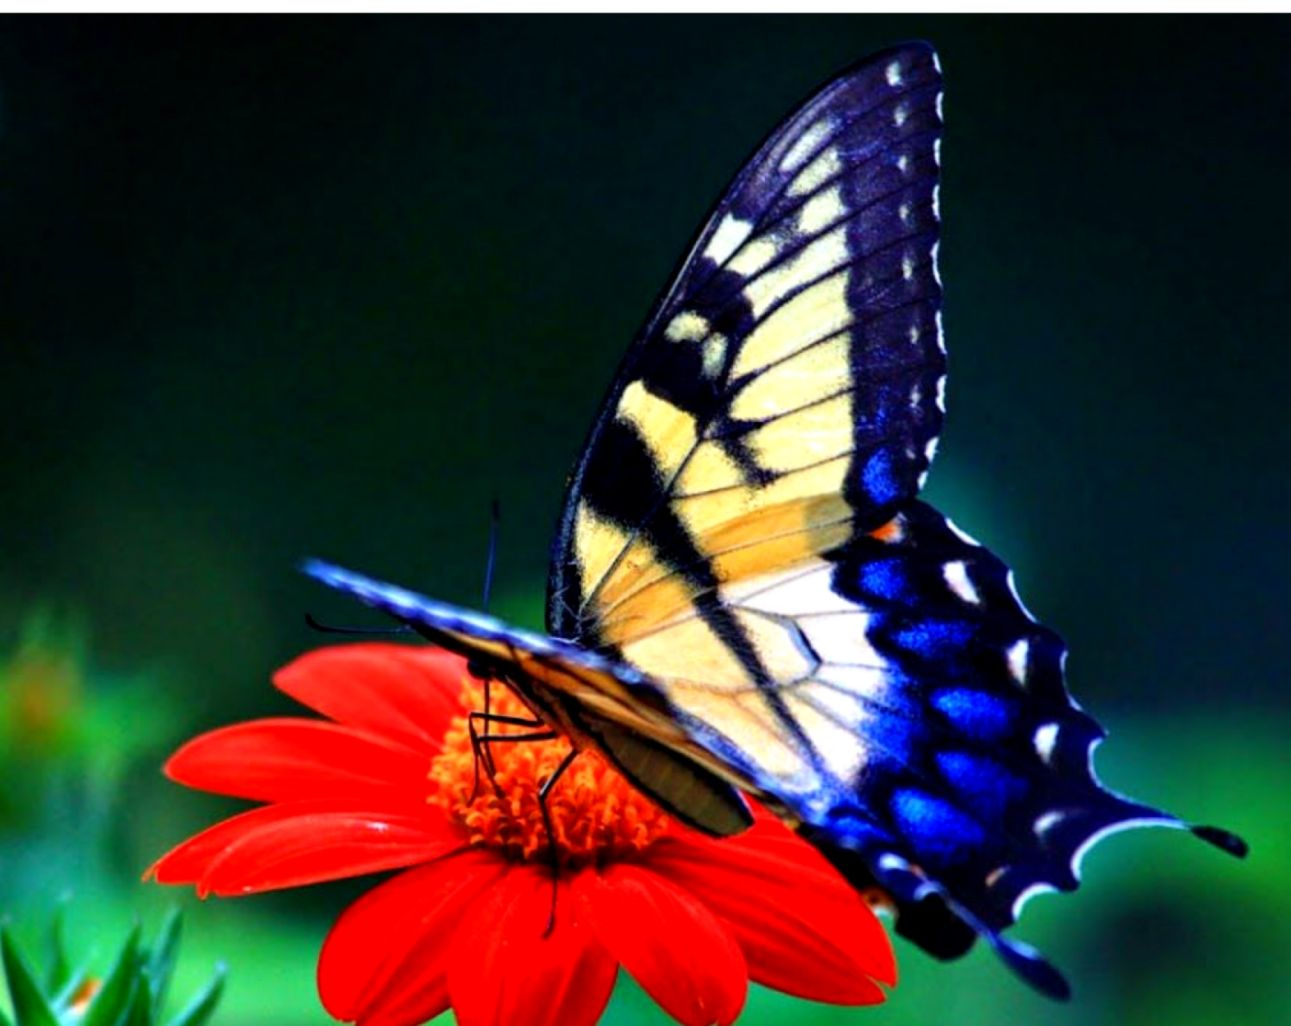 Butterfly Beauty Latest Hd Wallpapers Free Download List Wallpapers